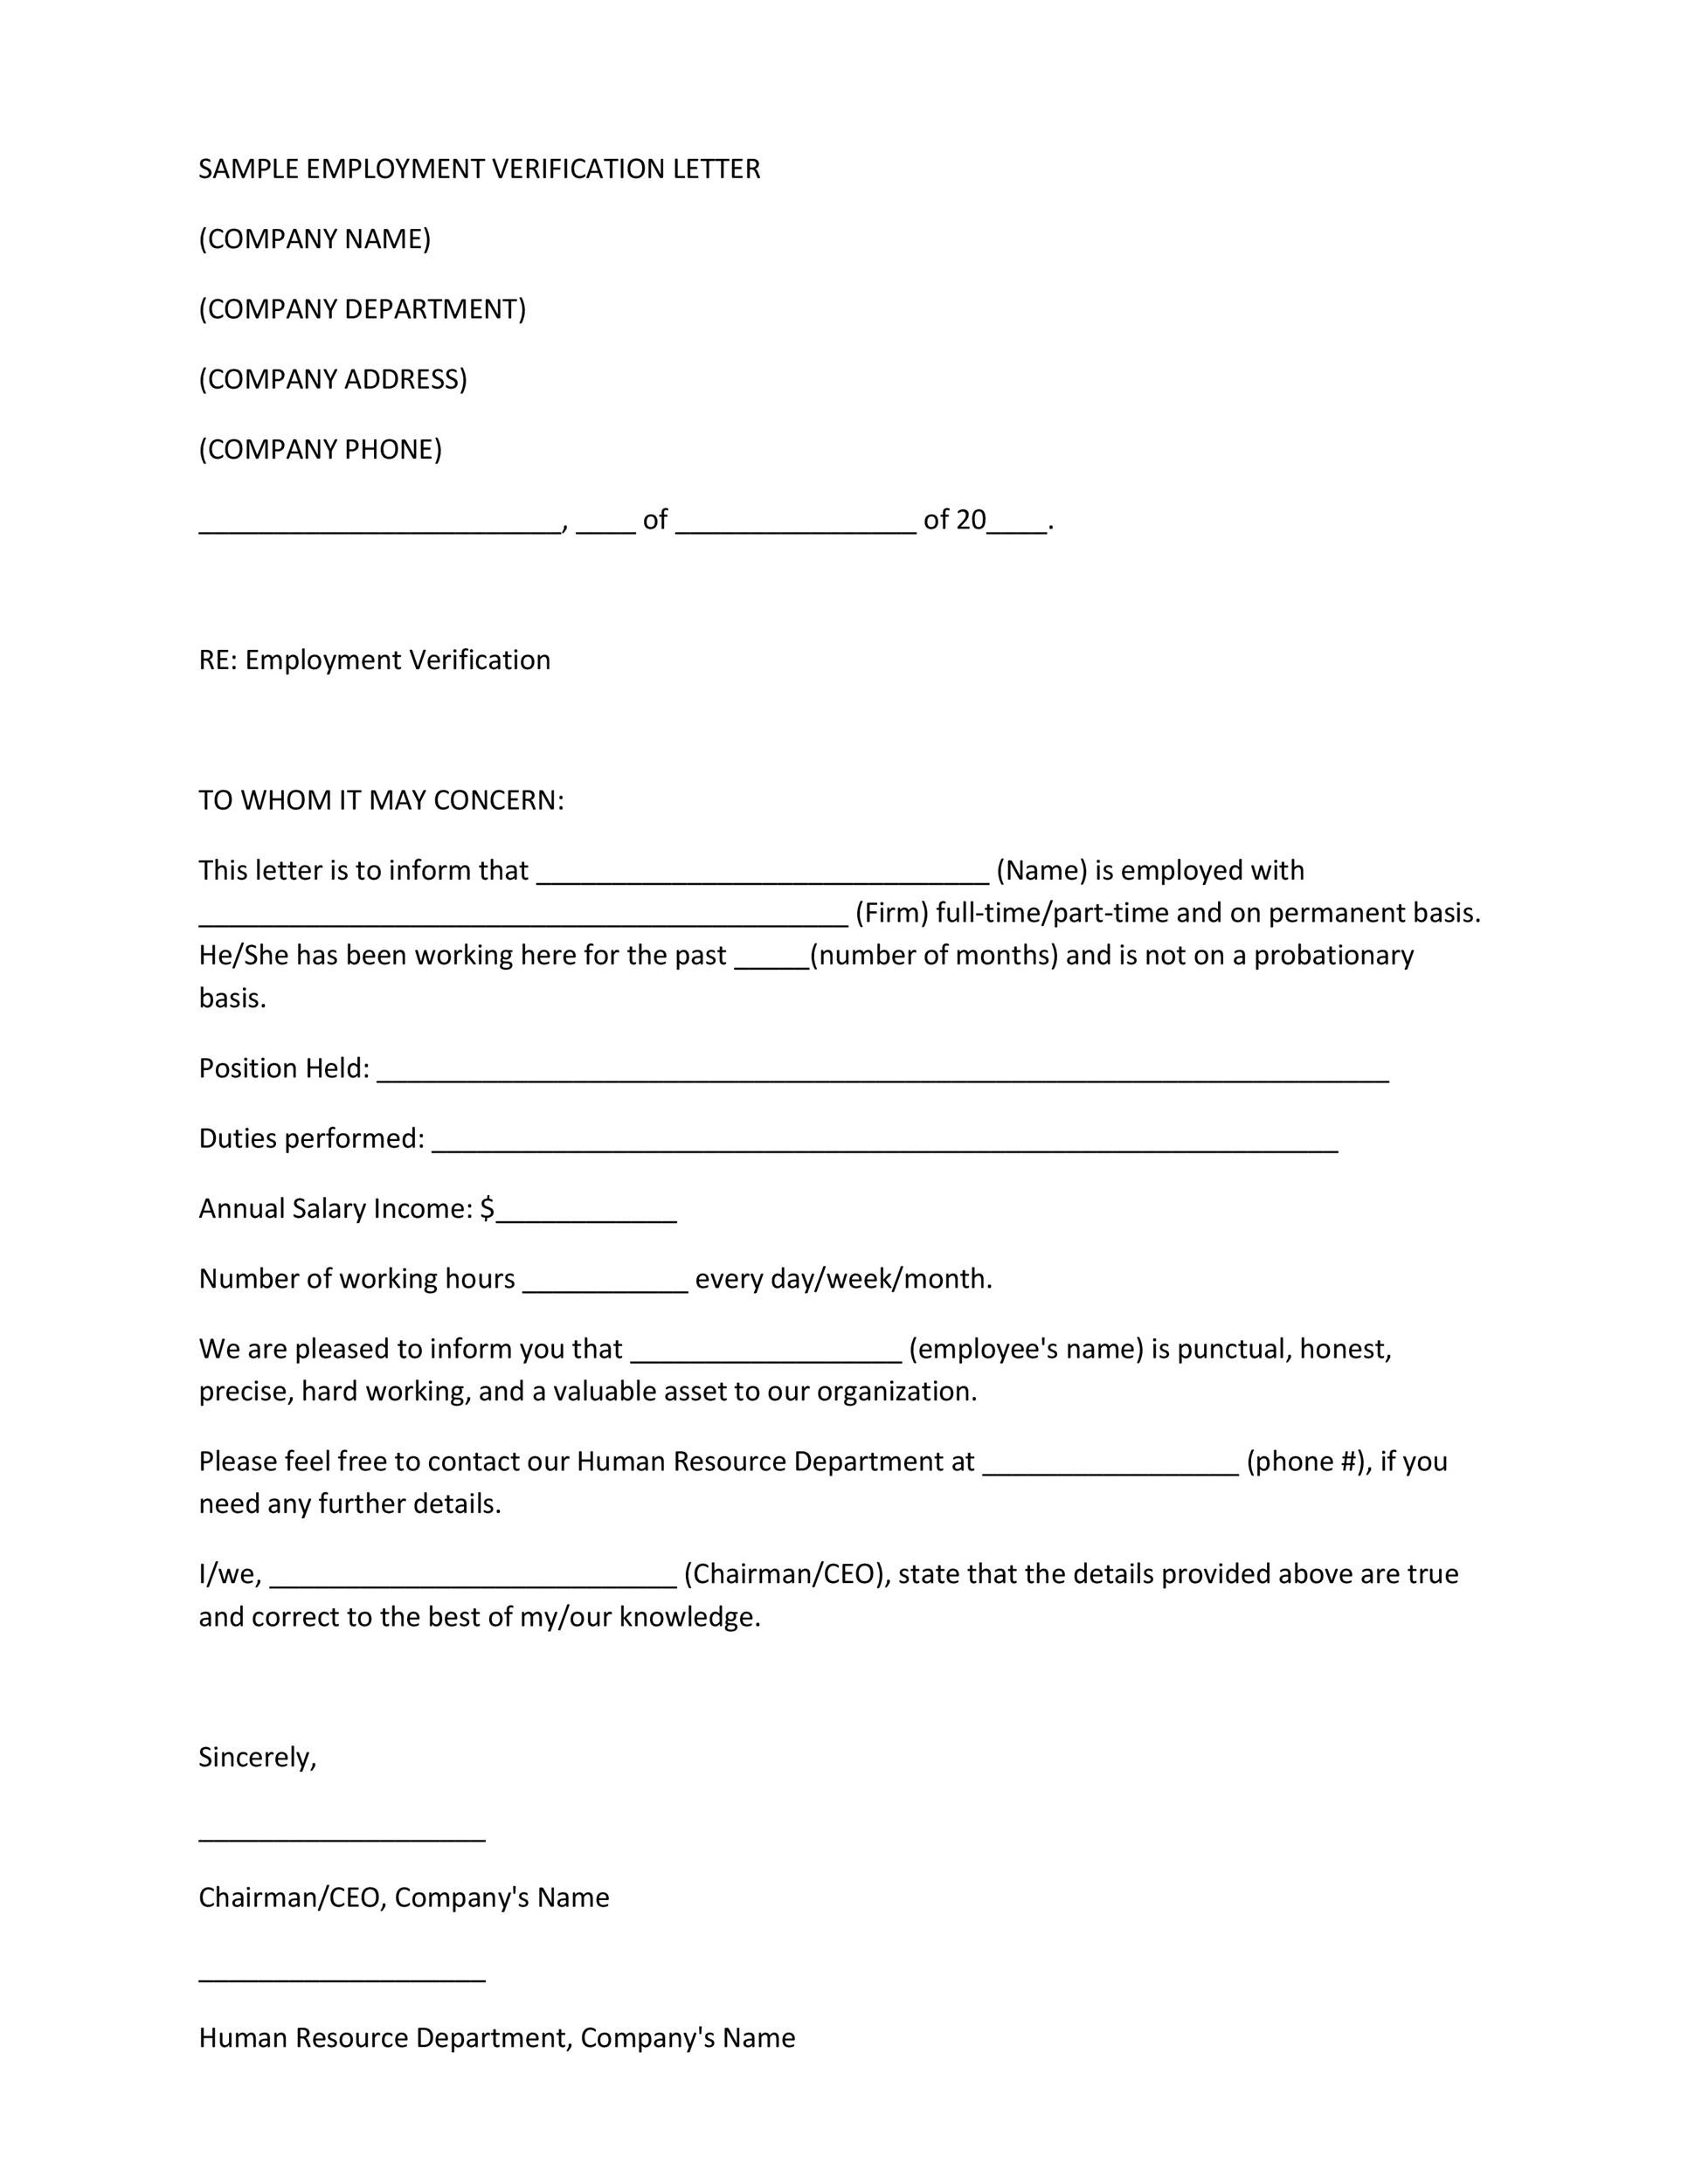 40 Proof of Employment Letters, Verification Forms  Samples - letter to confirm employment